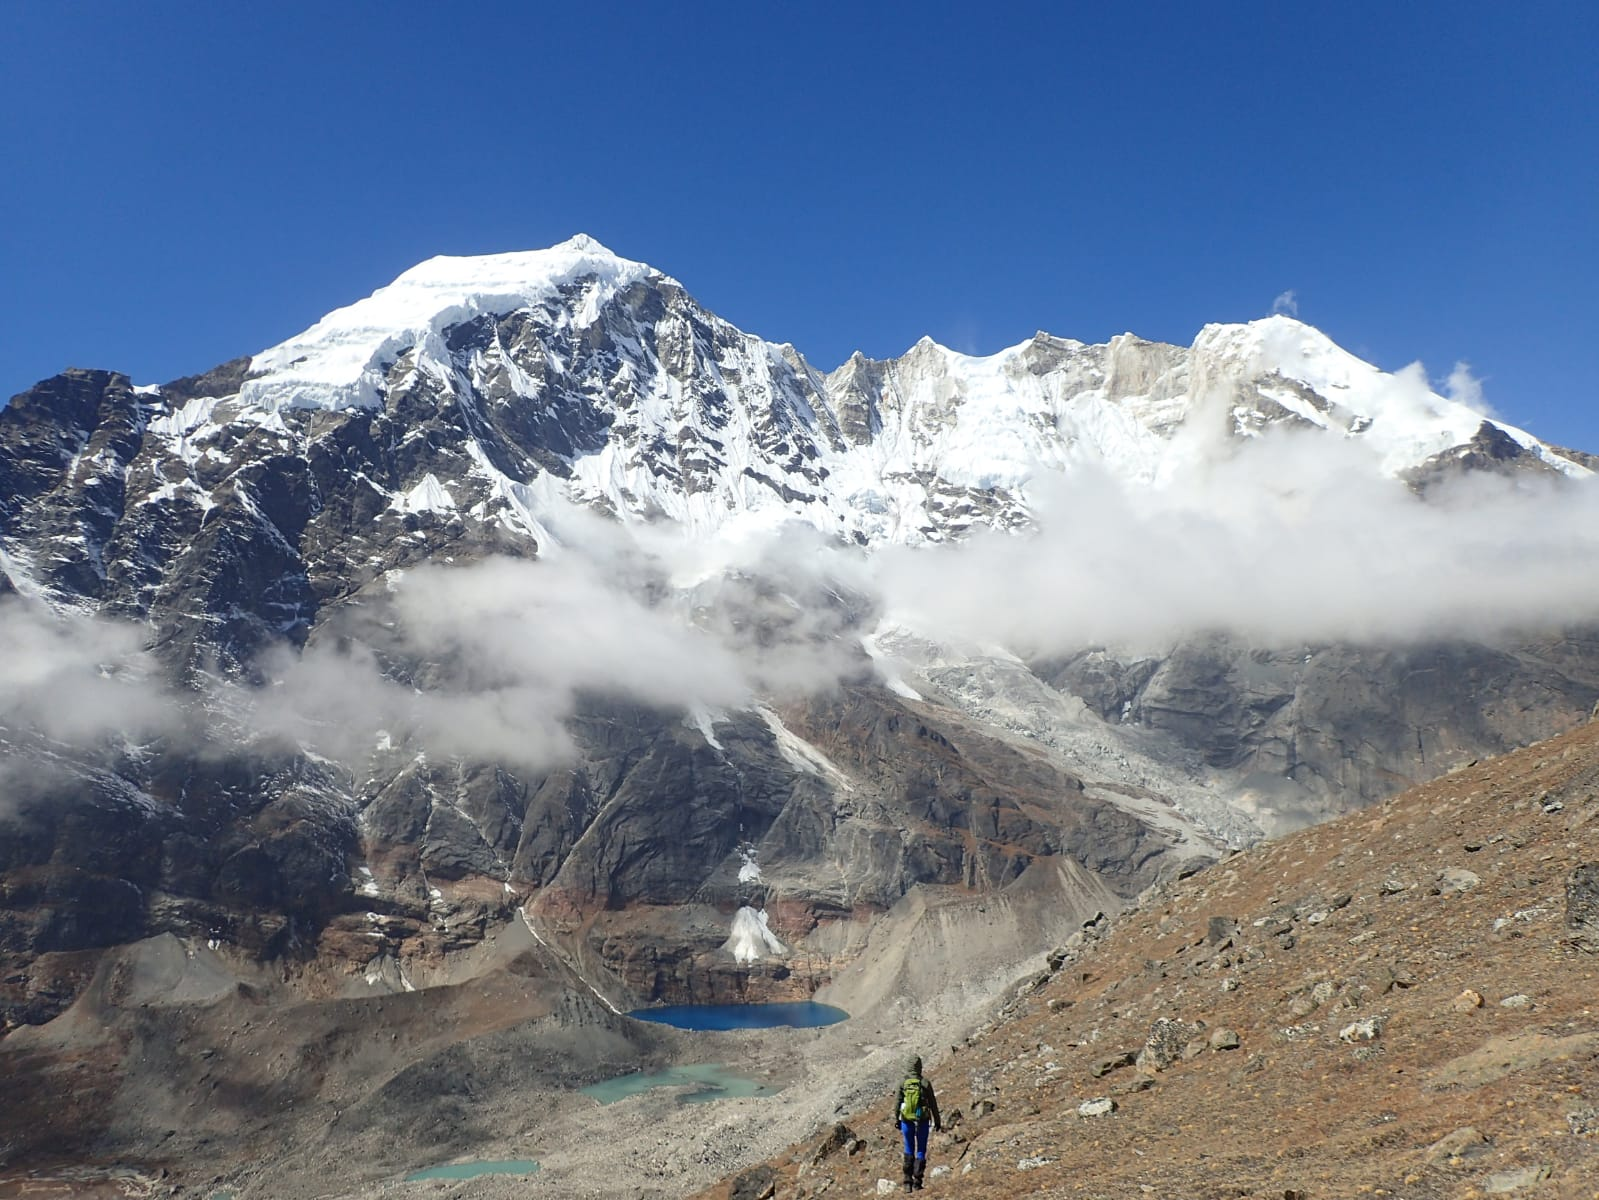 En route to Makalu - between the clouds. Photo by Peter Butler